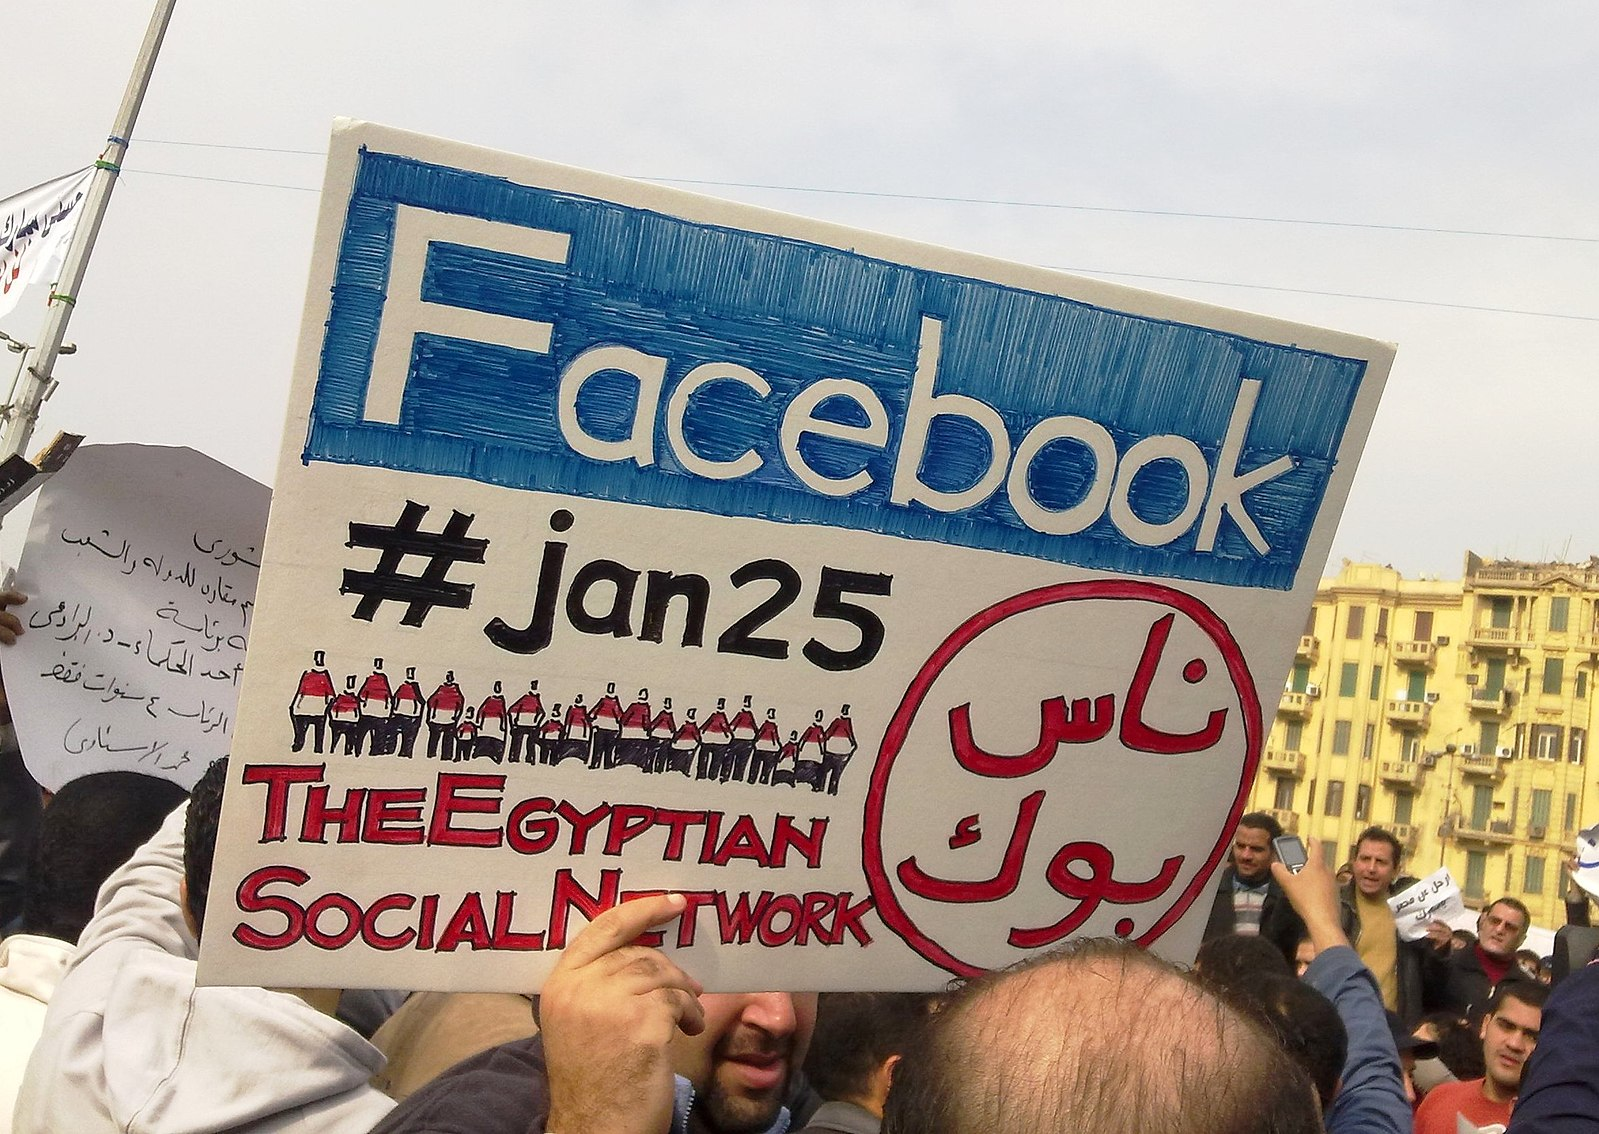 1599px-2011_Egyptian_protests_Facebook_&_jan25_card.jpg